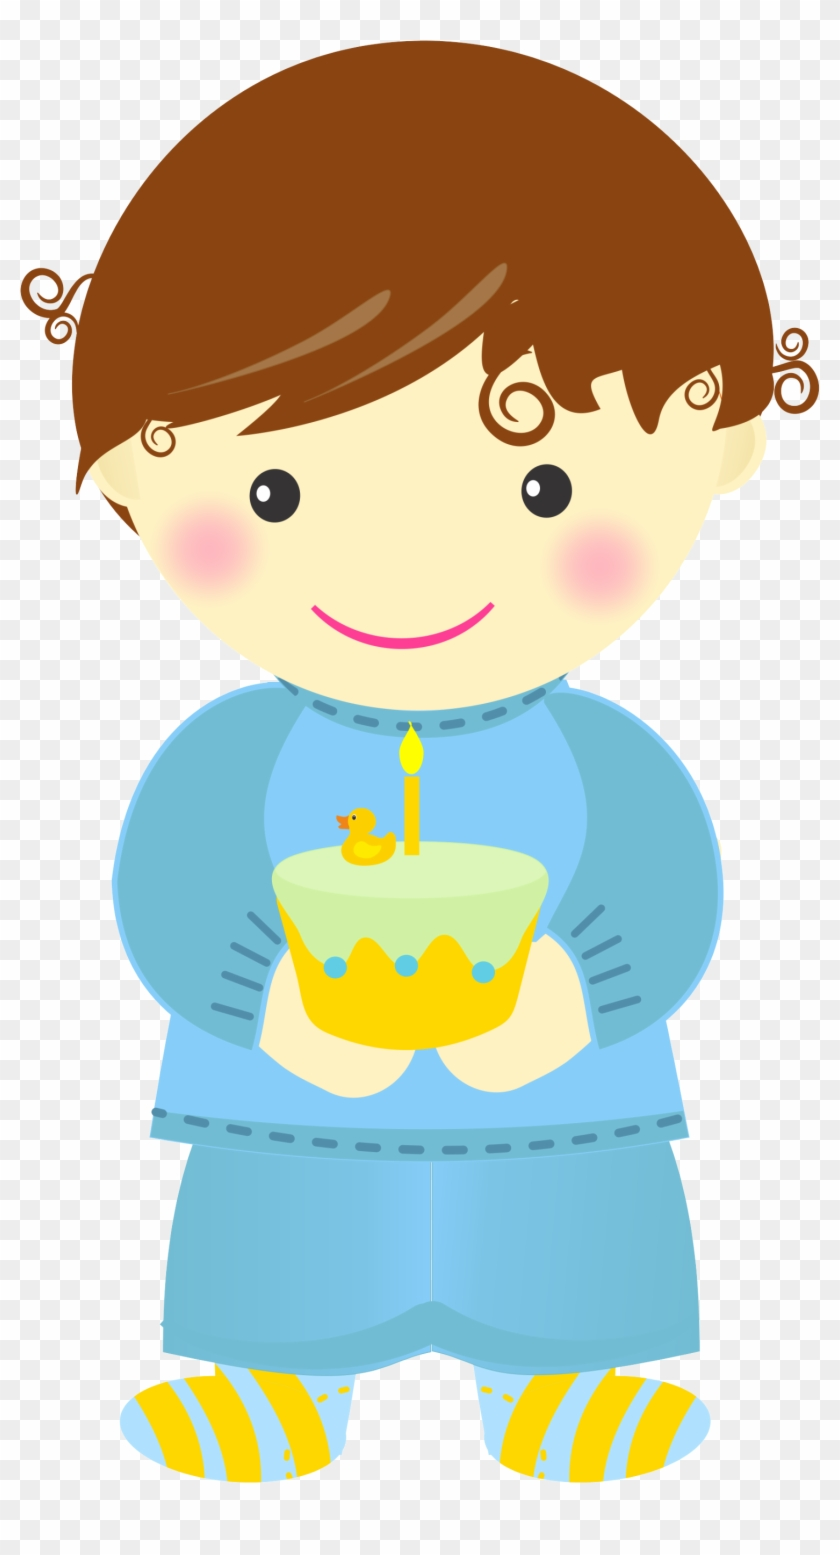 Baby's First Birthday Clip Art.